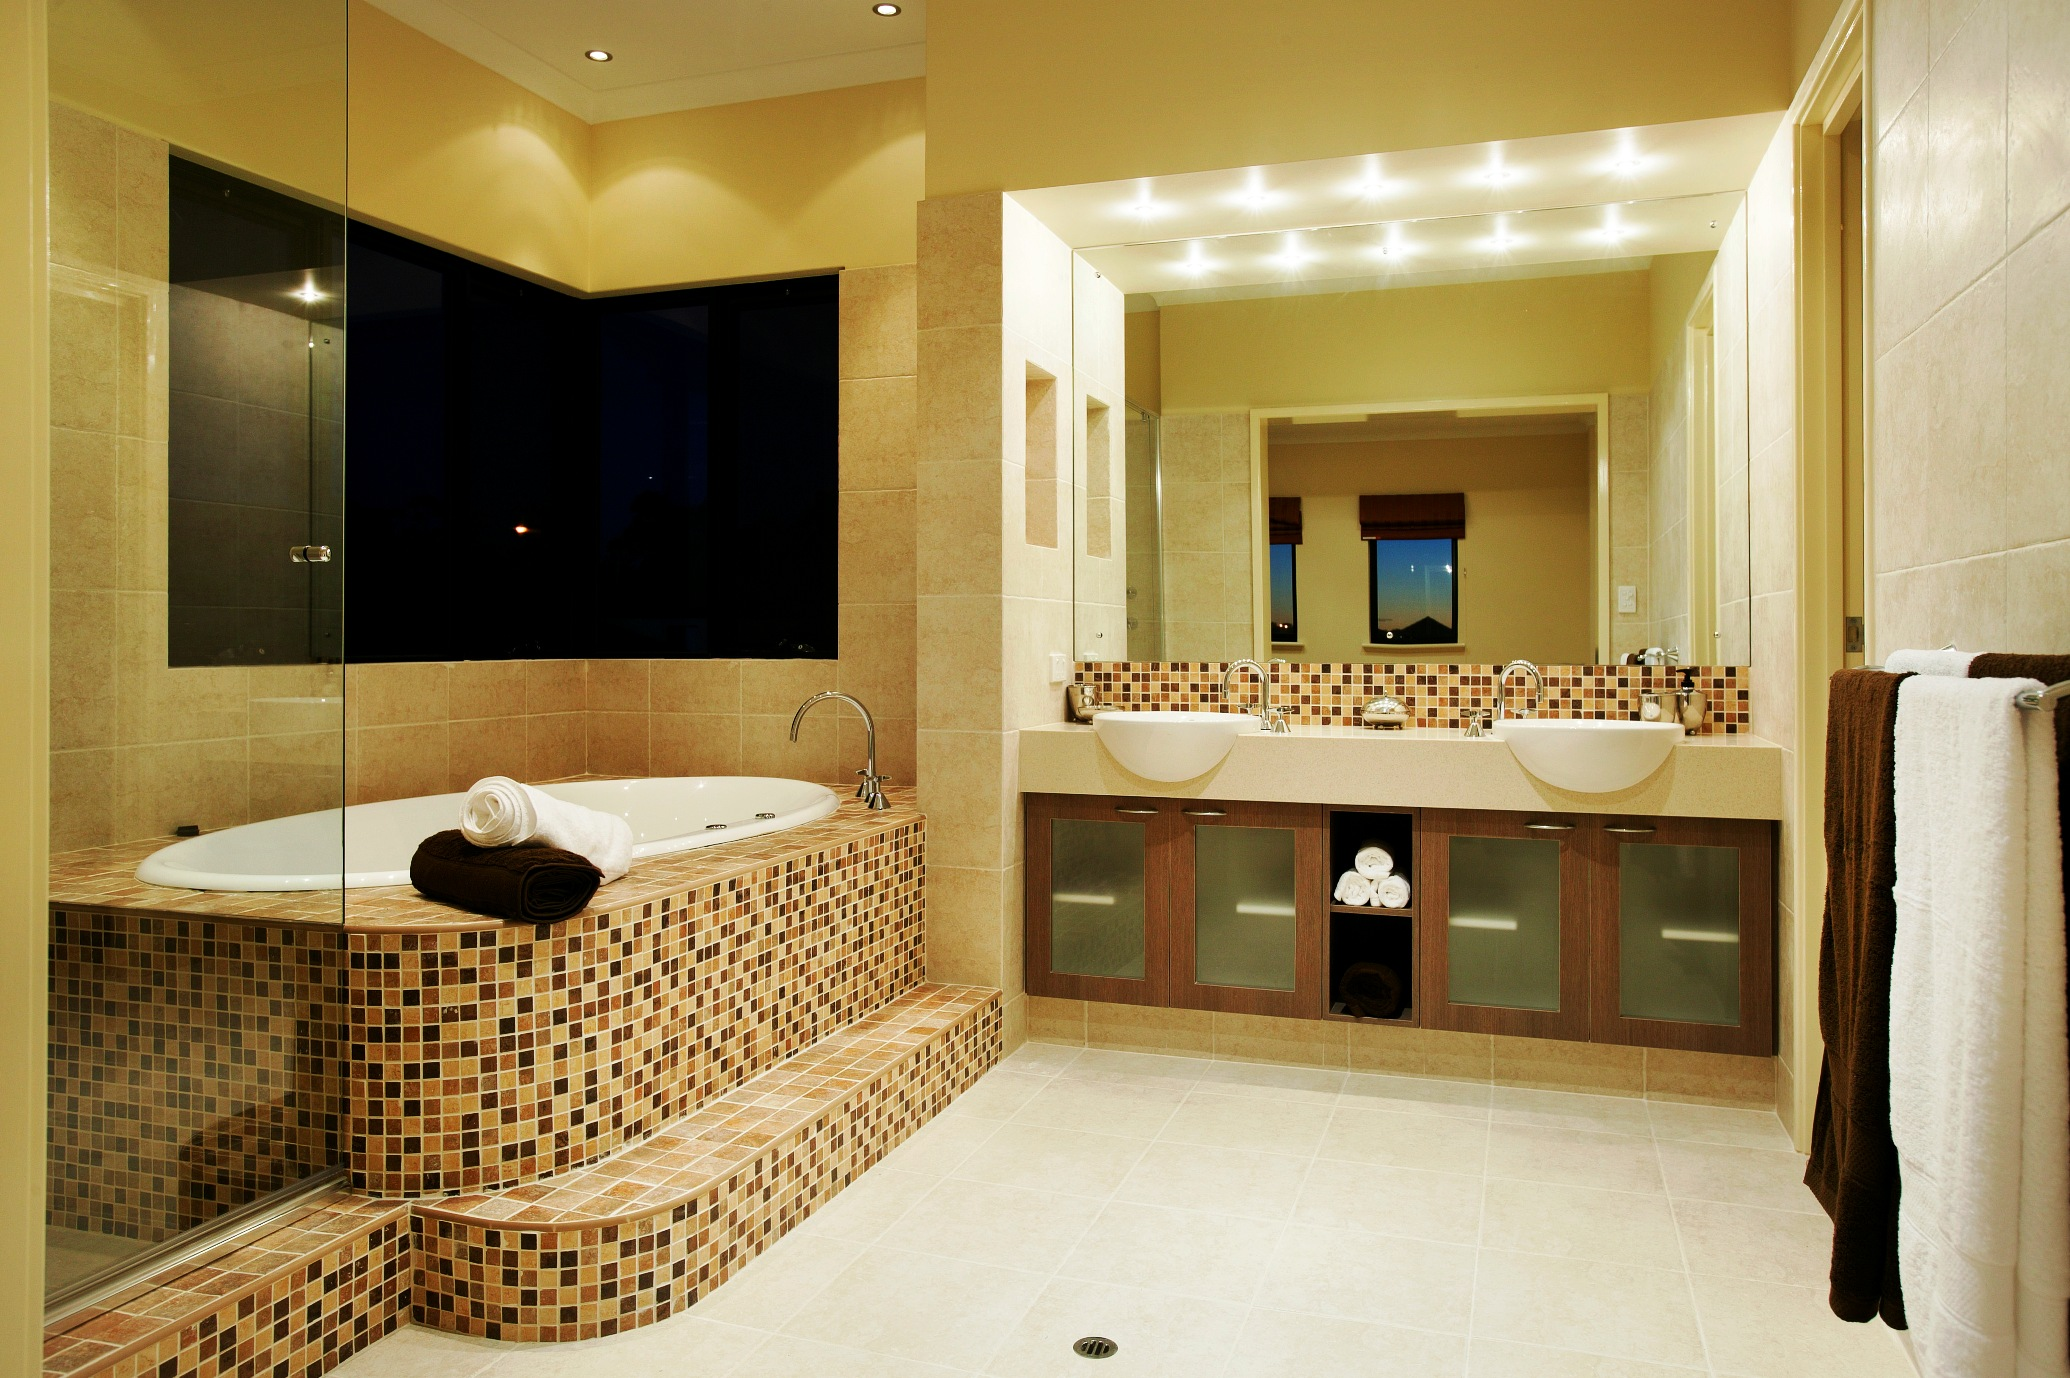 Magnificent Bathroom Design Ideas 2070 x 1378 · 789 kB · jpeg